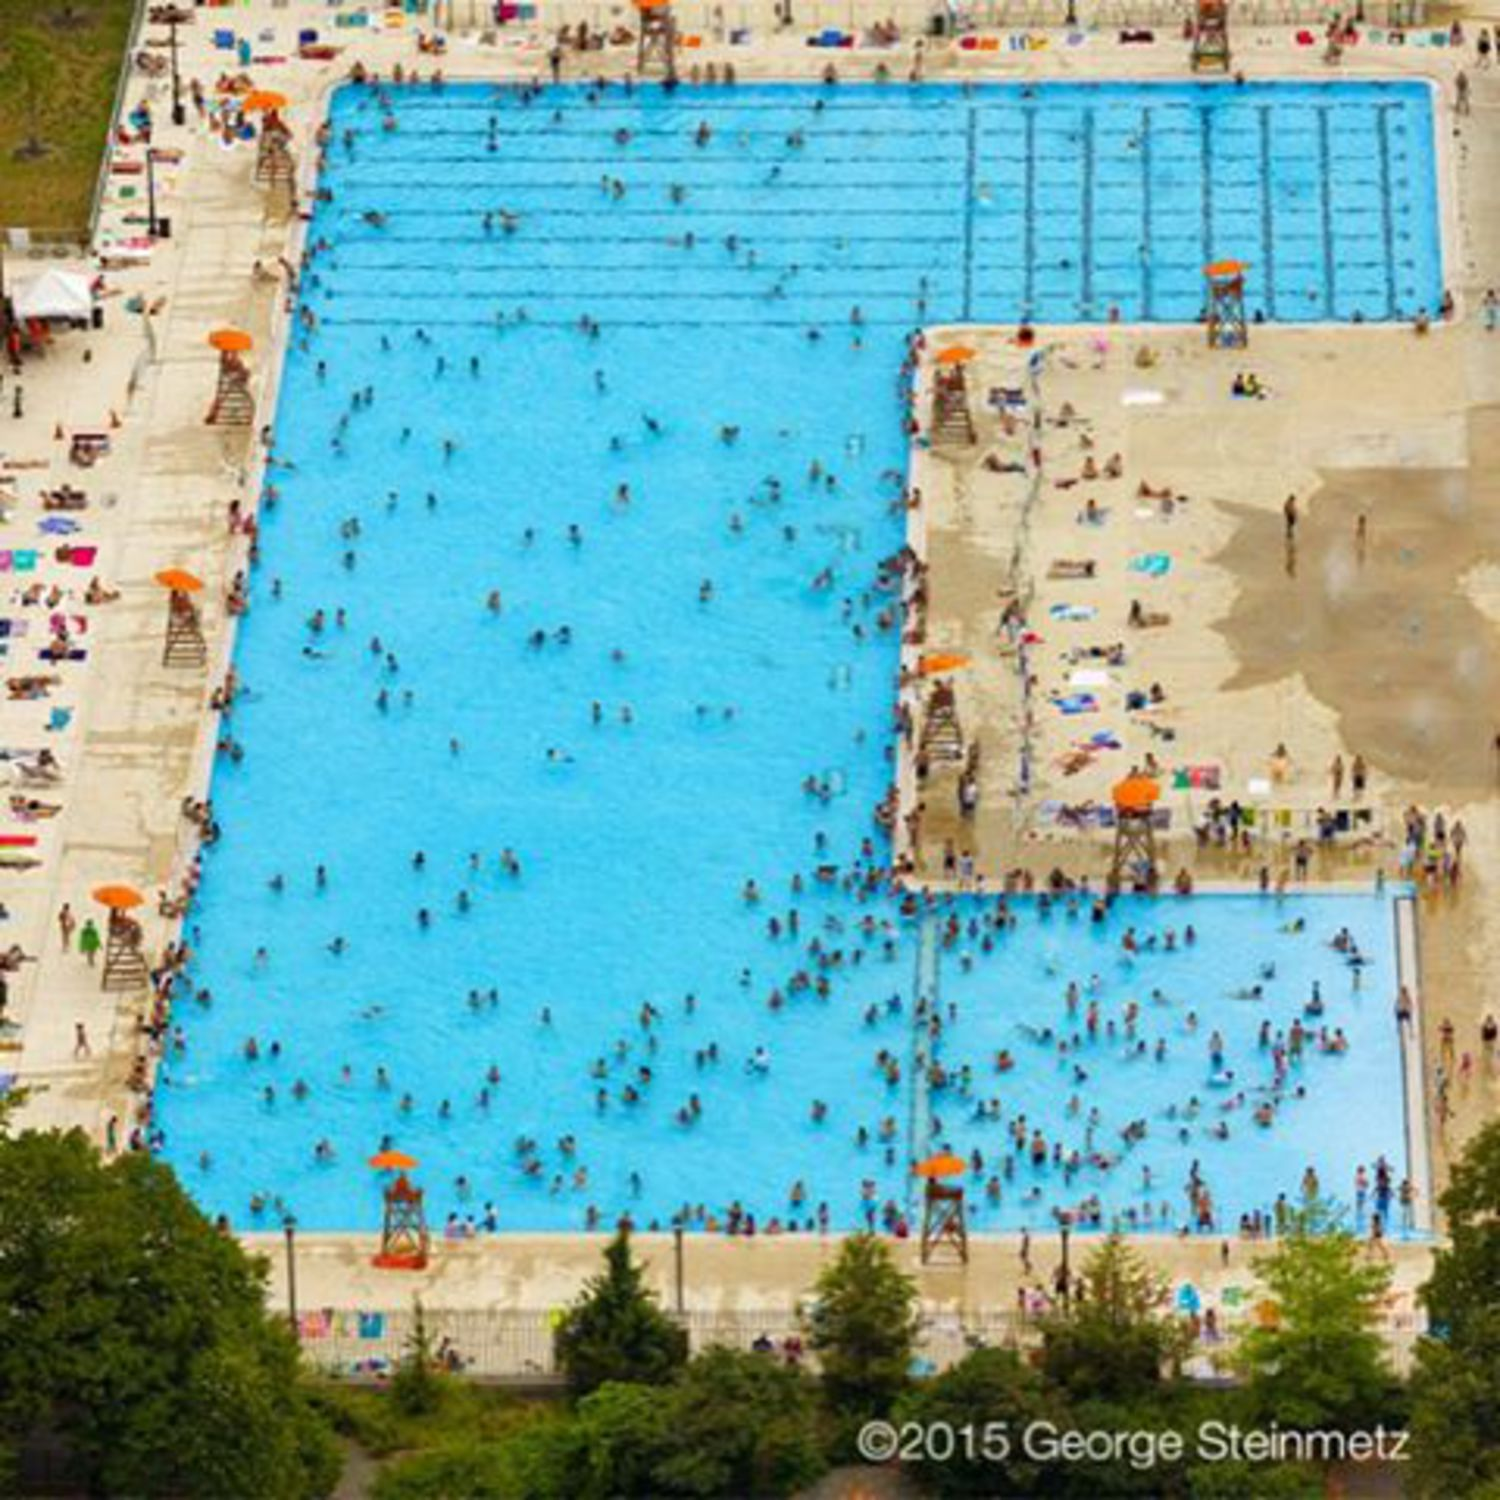 Photograph by George Steinmetz @geosteinmetz / @thephotosociety  McCarren Pool was the eighth of eleven giant pools built by the #WorksProgressAdministration and opened in 1936.  The city's first outdoor public swimming pools were attached to baths and dated from the turn of the twentieth century; before that, there were floating baths in the Hudson and East Rivers.